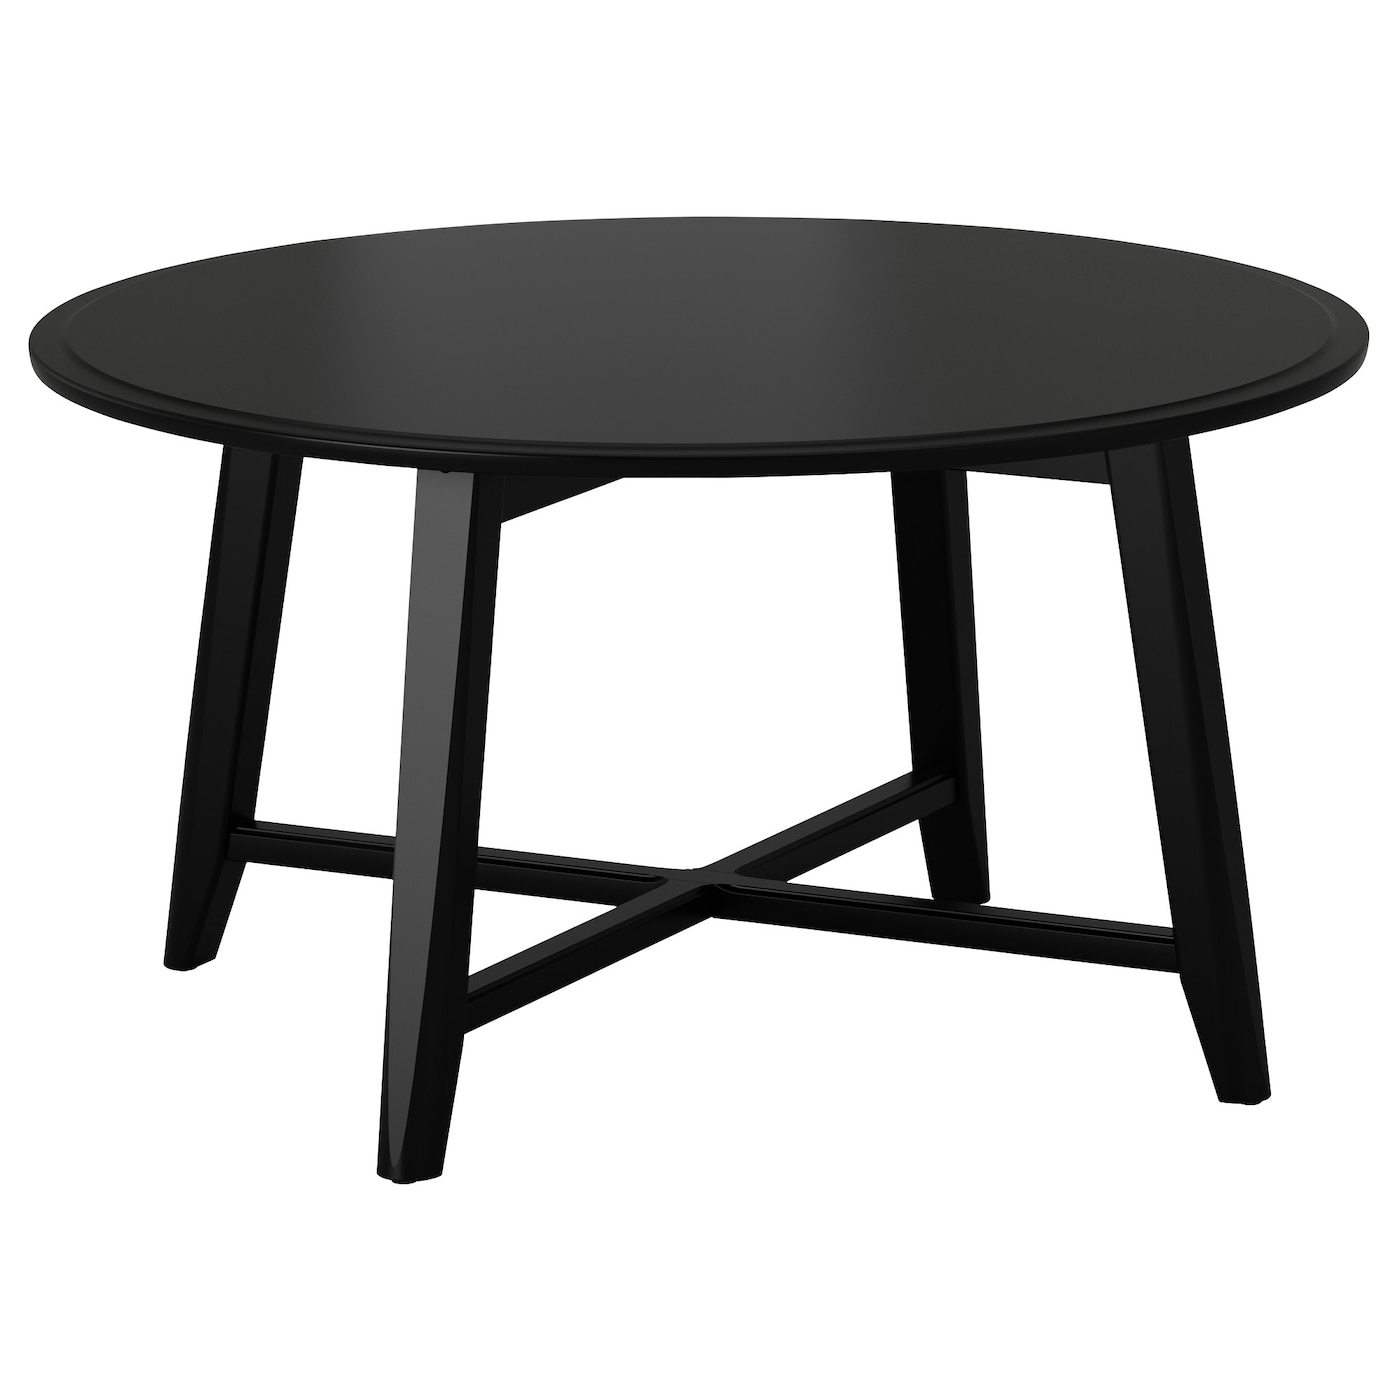 IKEA KRAGSTA Coffee Table The Table Legs Are Made Of Solid Wood, A  Hardwearing Natural